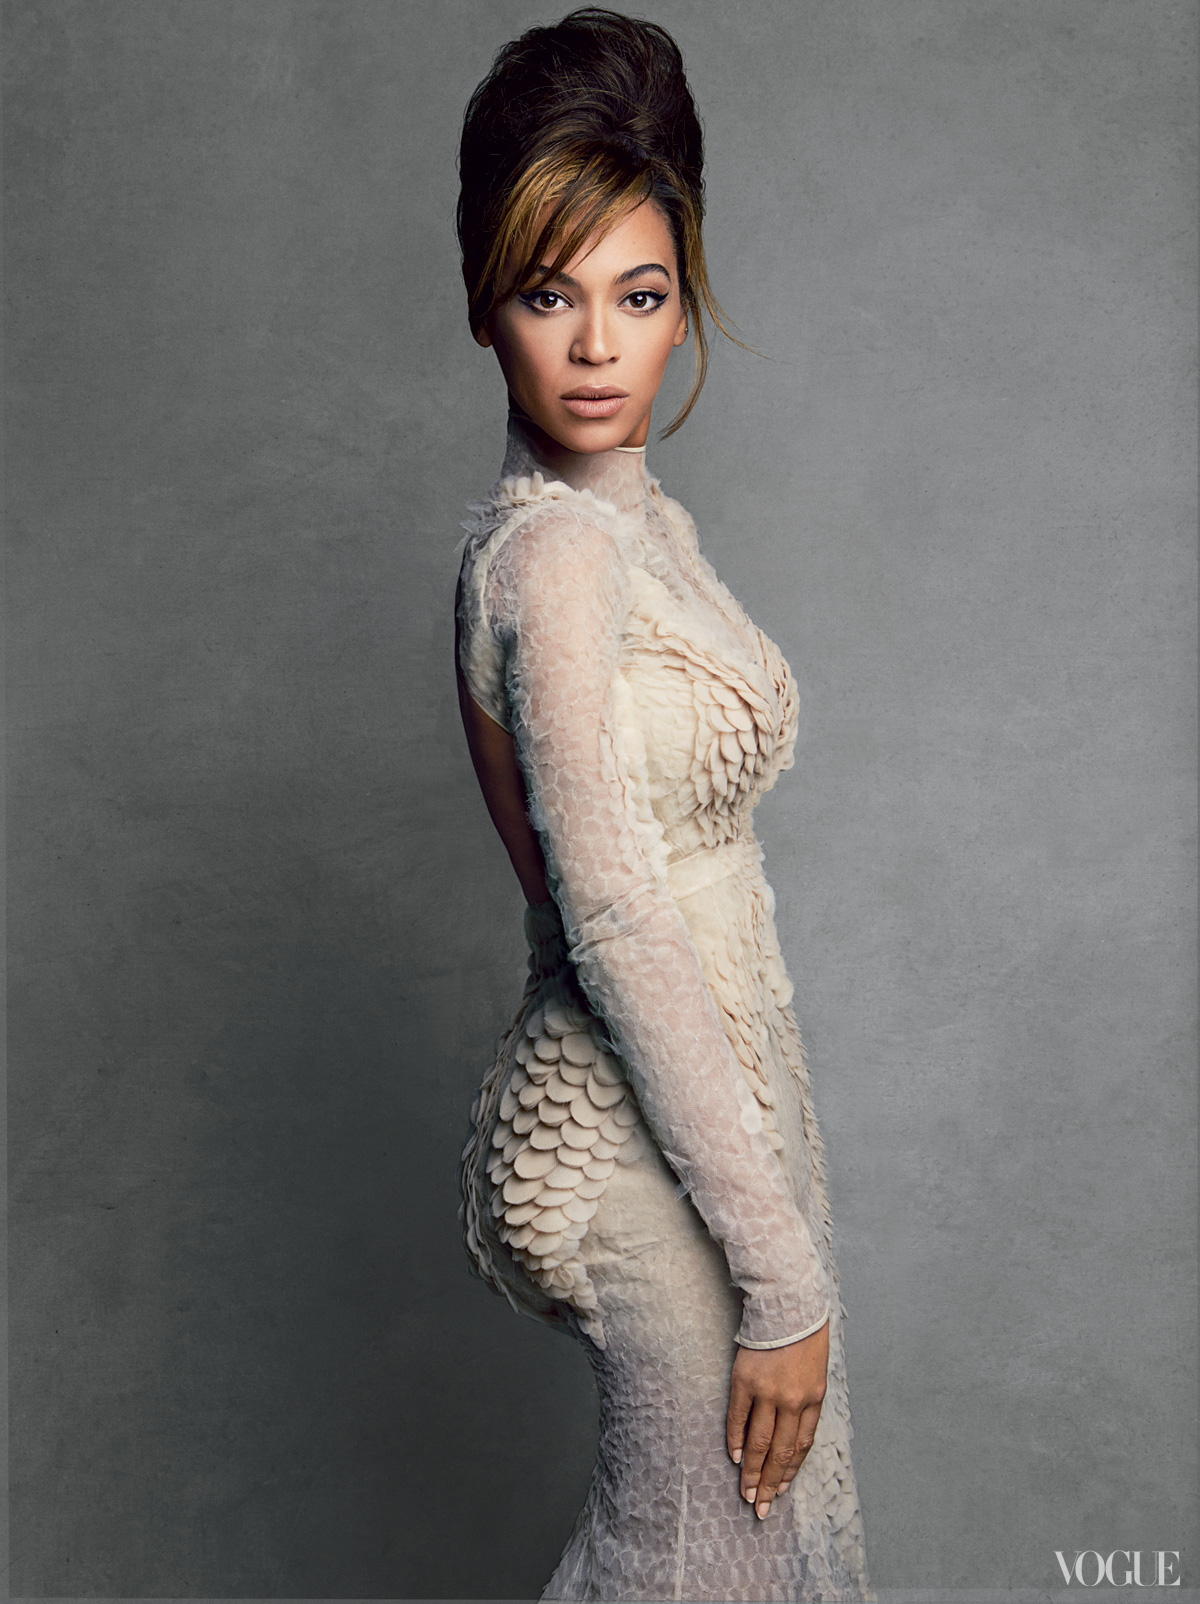 Beyonce Covers Vogue + Full Photoshoot | HipHop-N-More